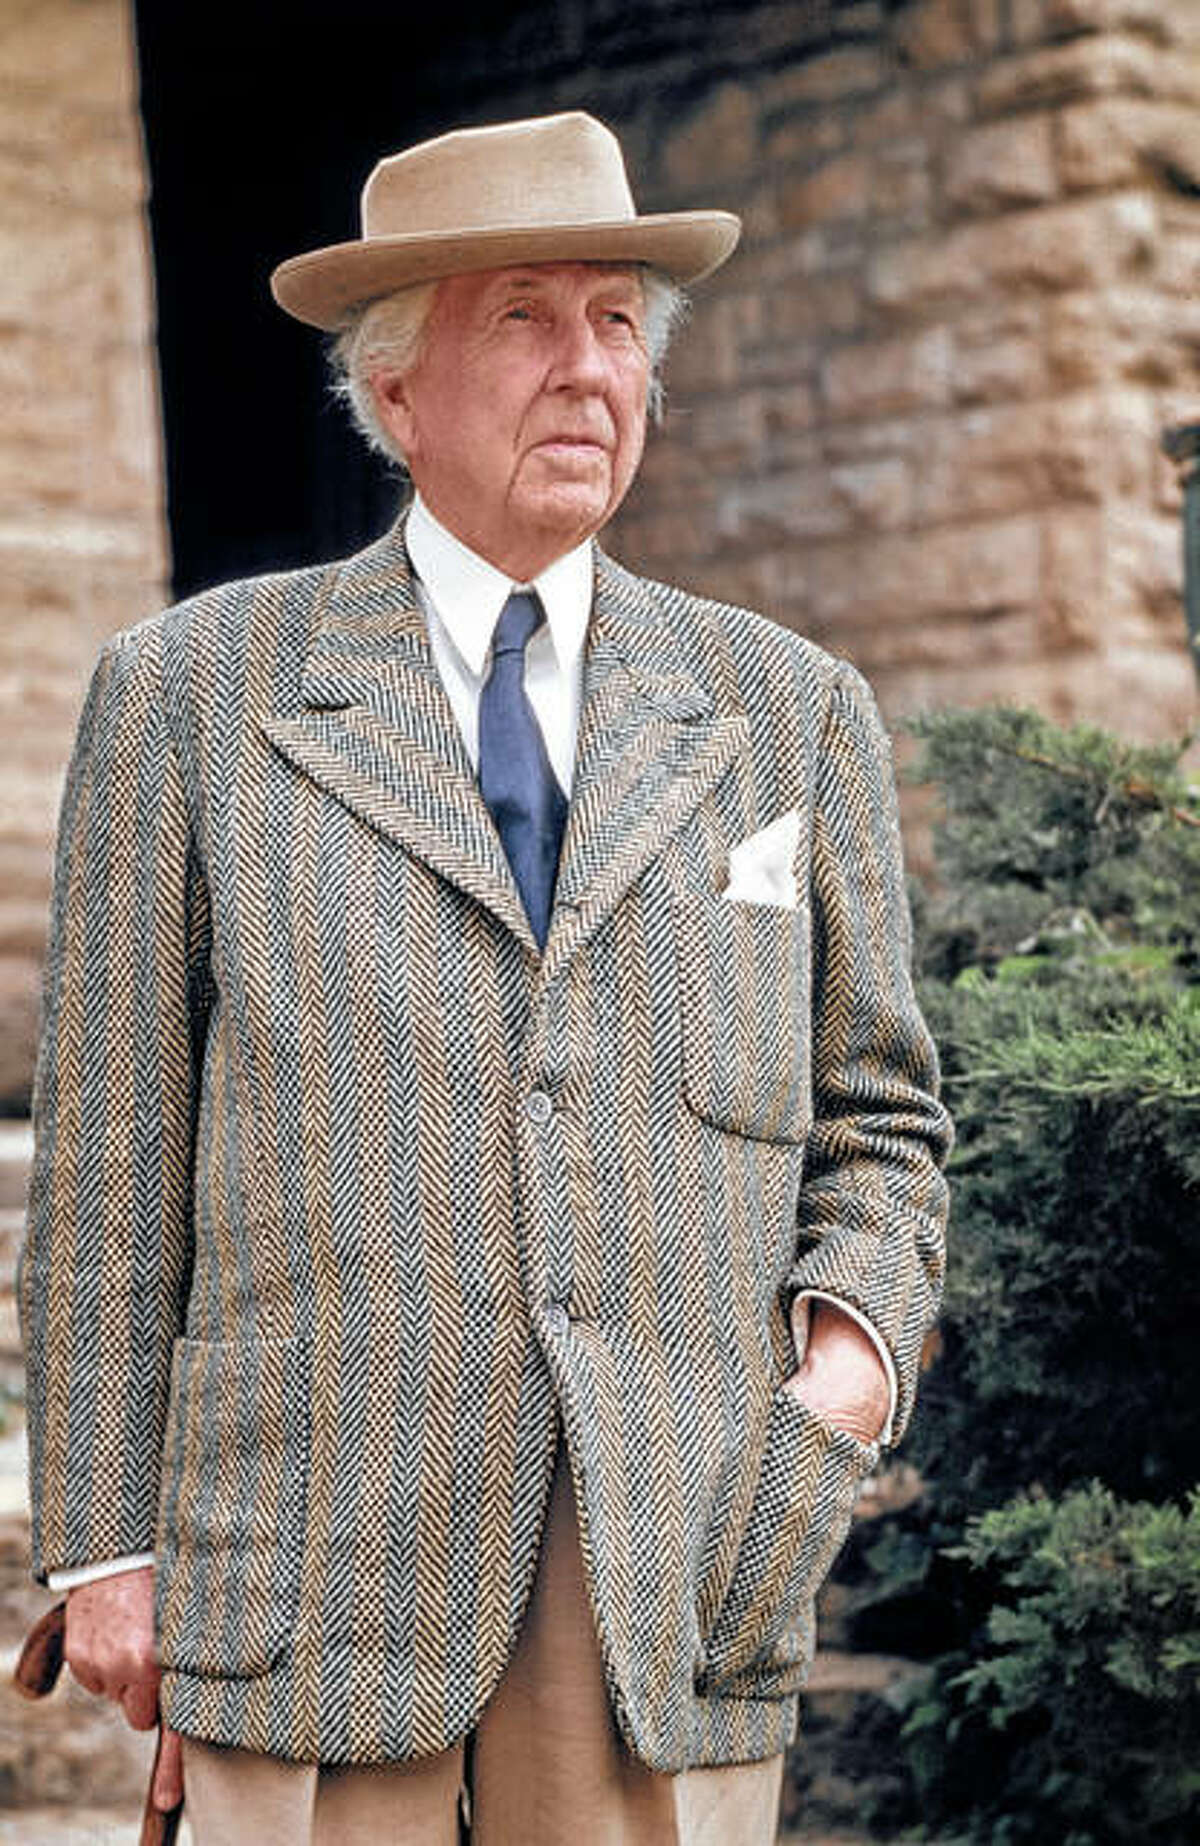 American architect Frank Lloyd Wright stands in 1947 outside Taliesin, the home and school he designed for himself in Spring Green, Wisconsin.